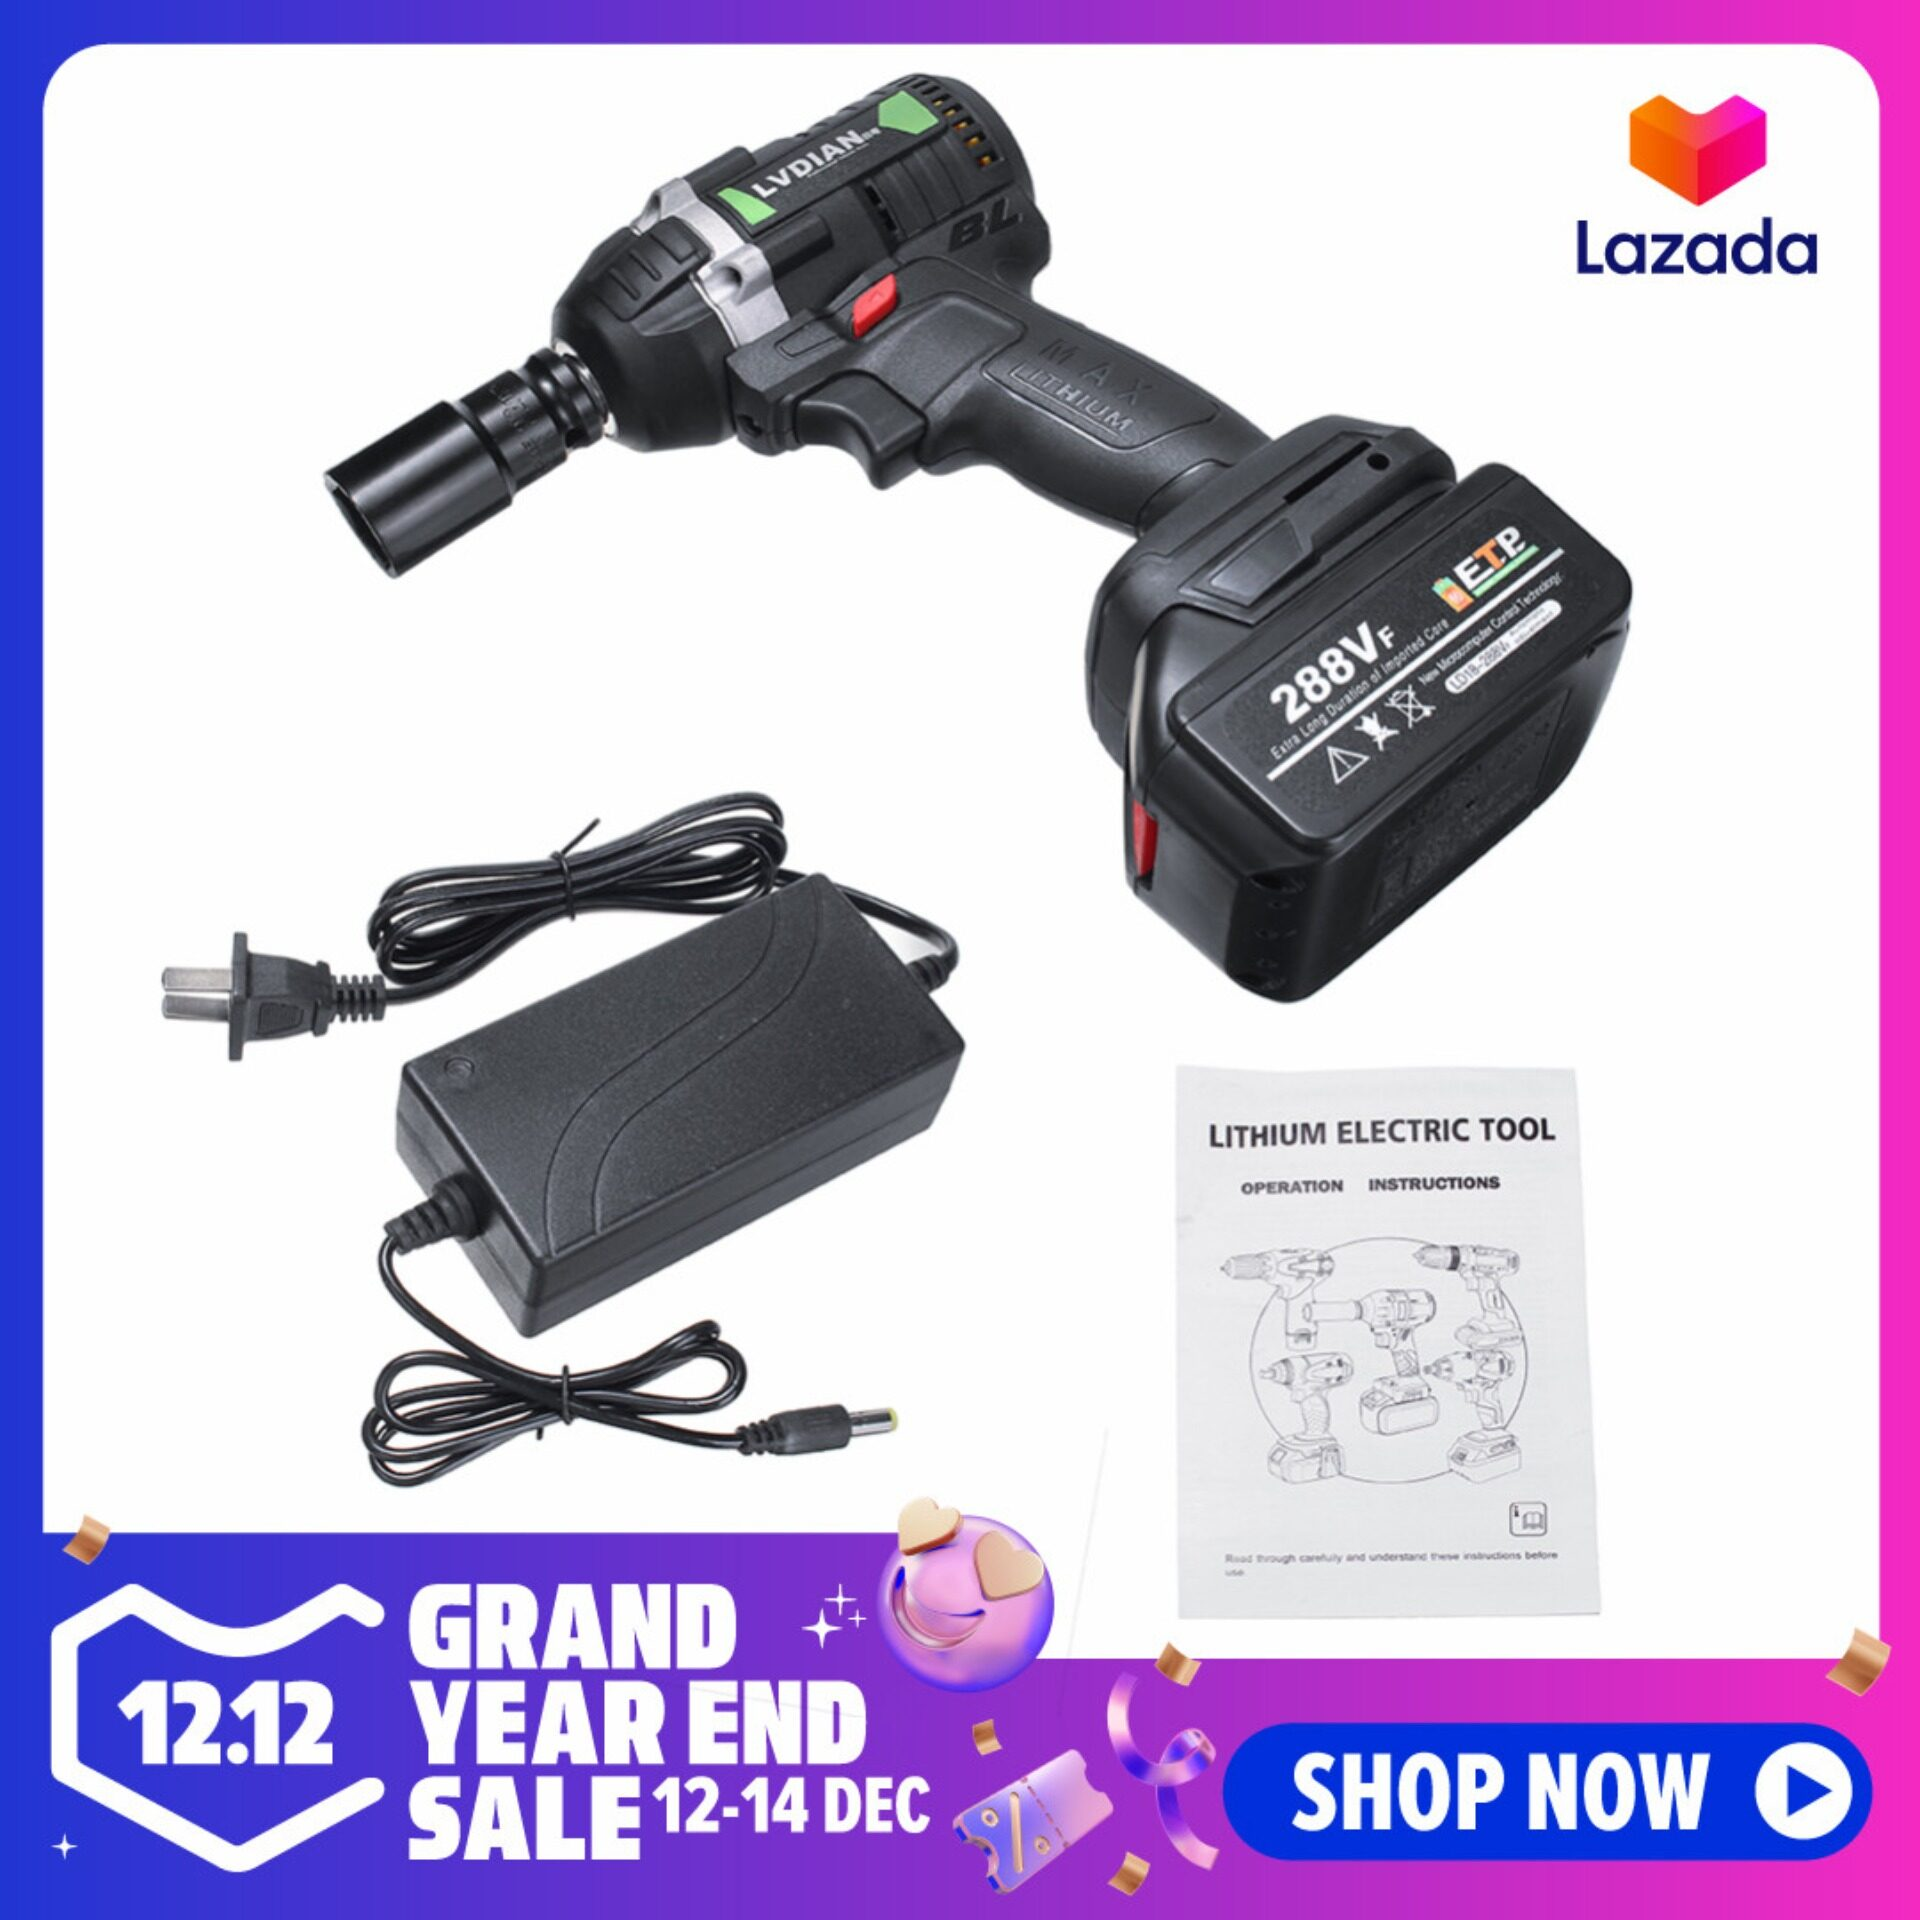 [12.12] 630N.M 288VF Electric Cordless Brushless Impact Wrench 19800mAh Ratchet Driver